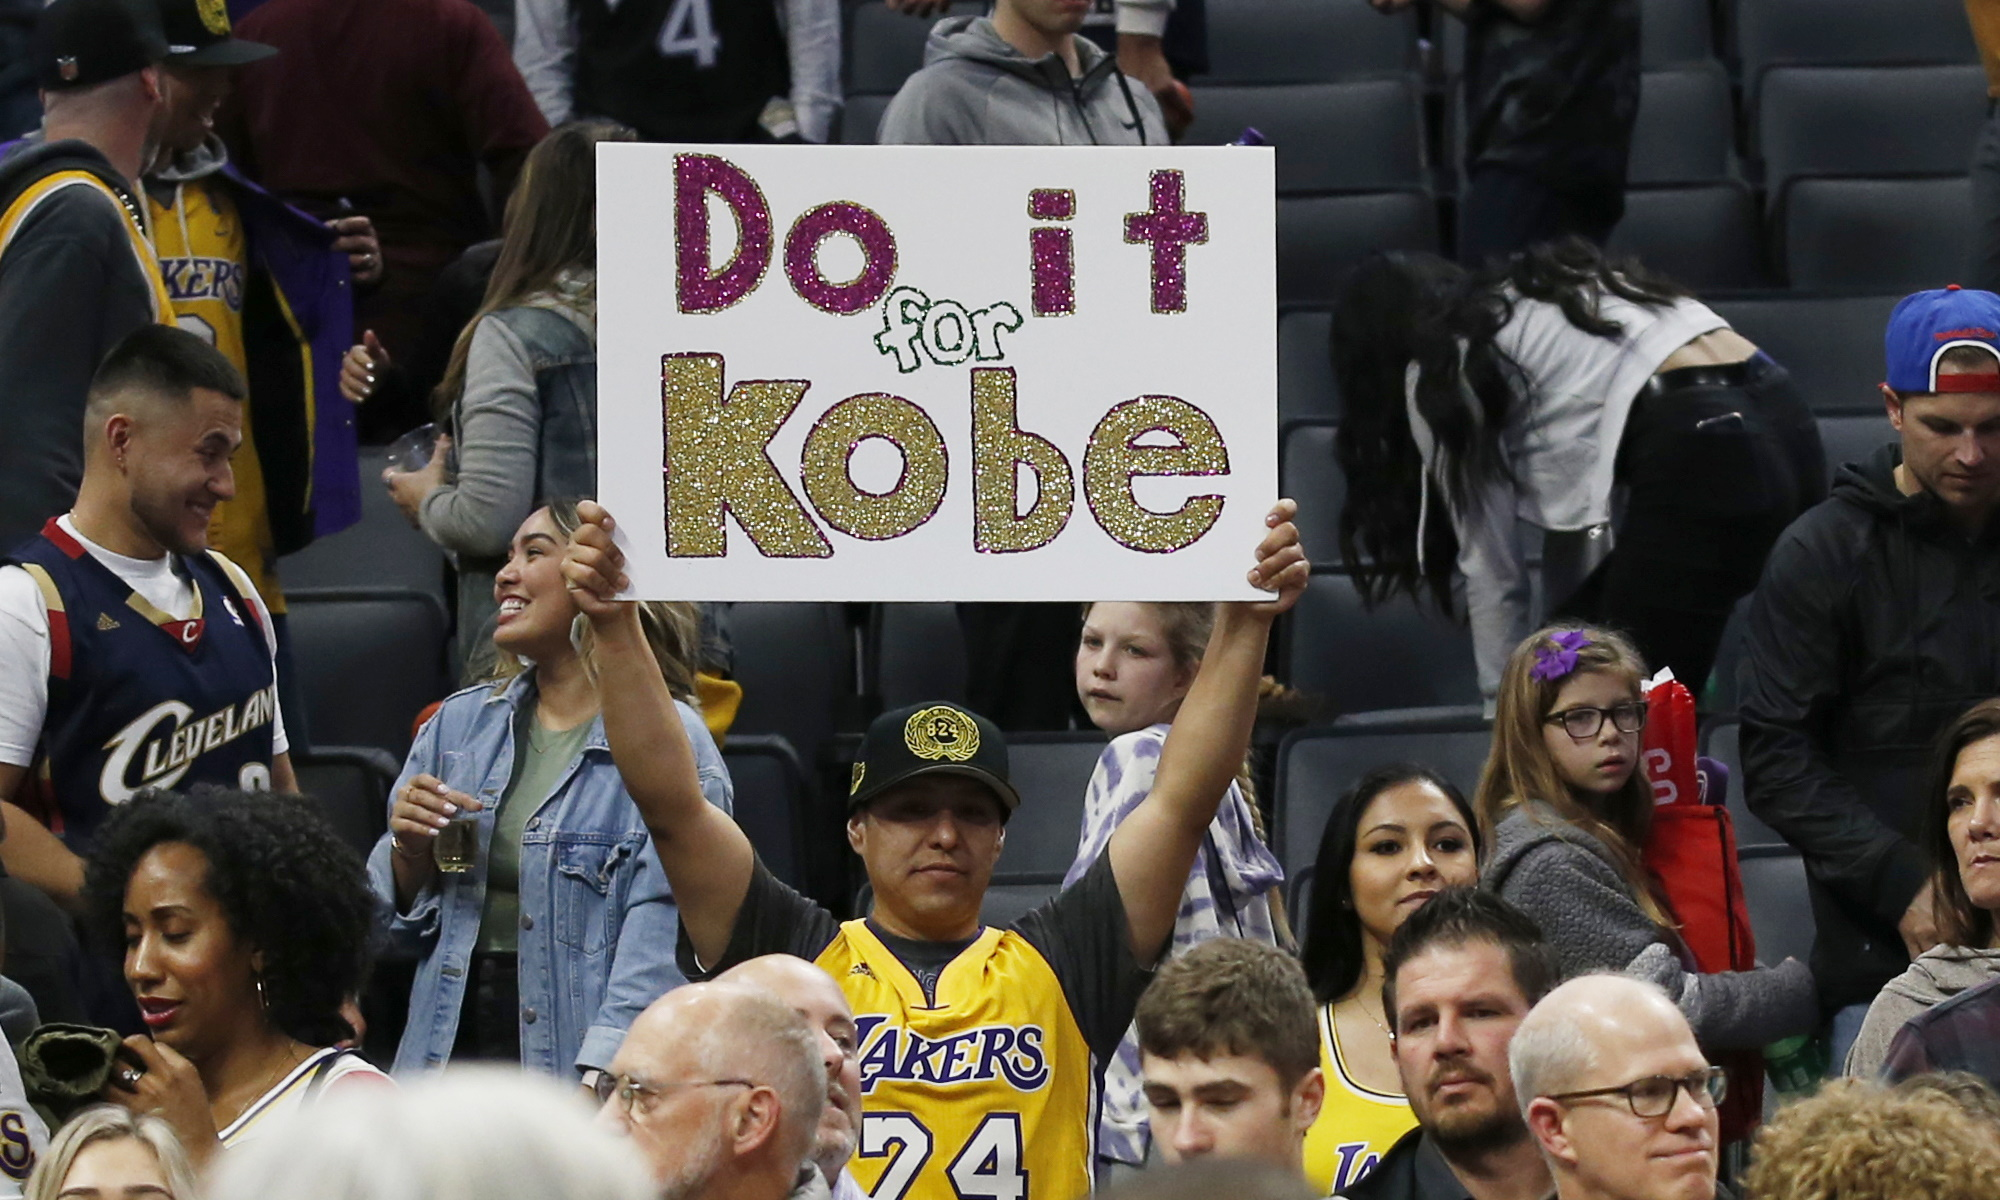 A Los Angeles Lakers fan displays a sign in memory of Kobe Bryant, Los Angeles Lakers vs Sacramento Kings at Golden 1 Center